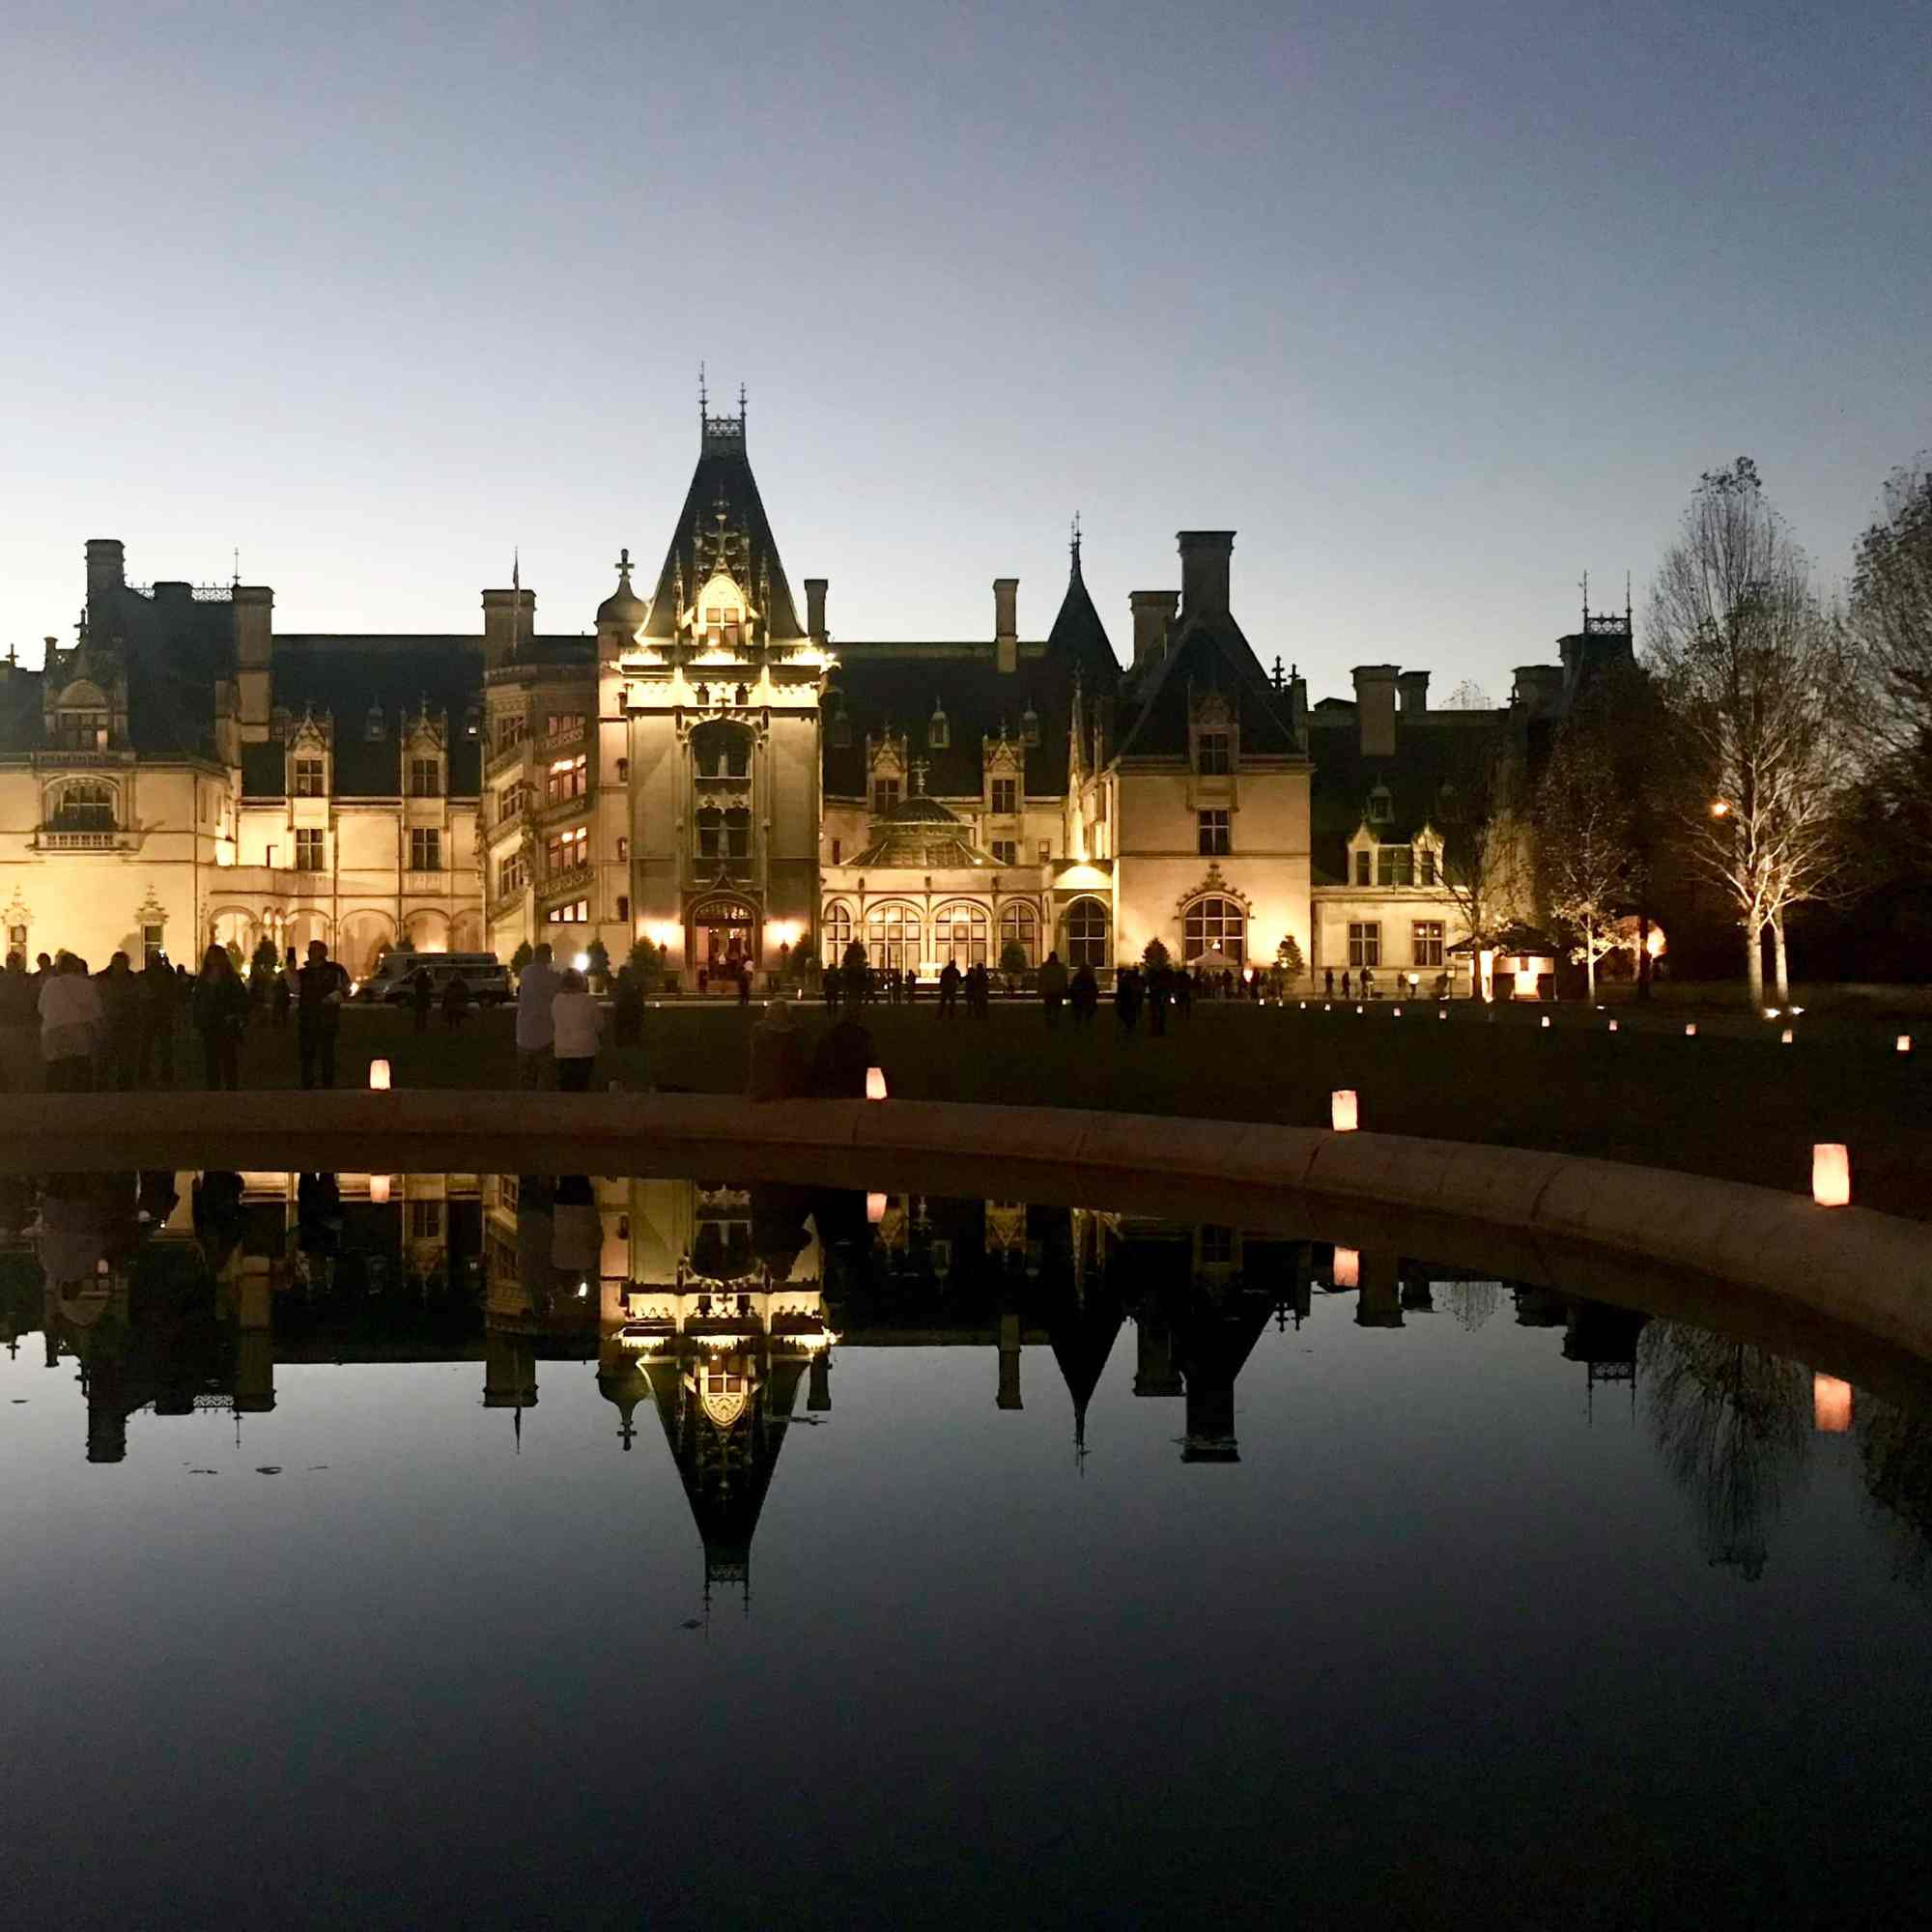 Biltmore House at sunset with reflection of house in pool